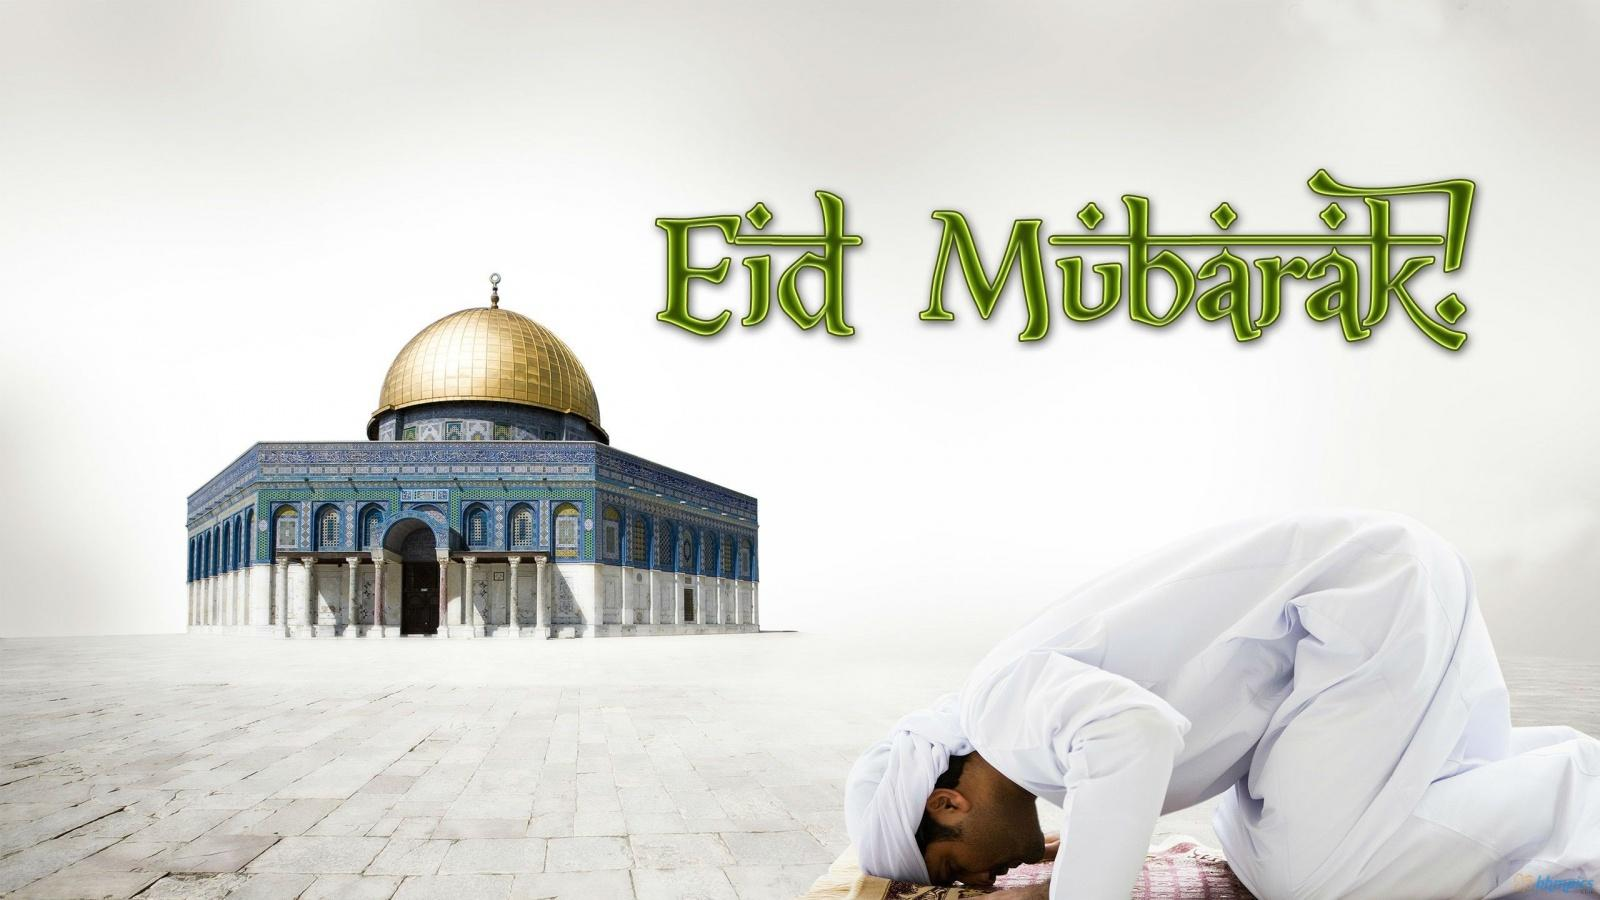 Eid Mubarak HD wallpaper pictures for boyfriend and girlfriend